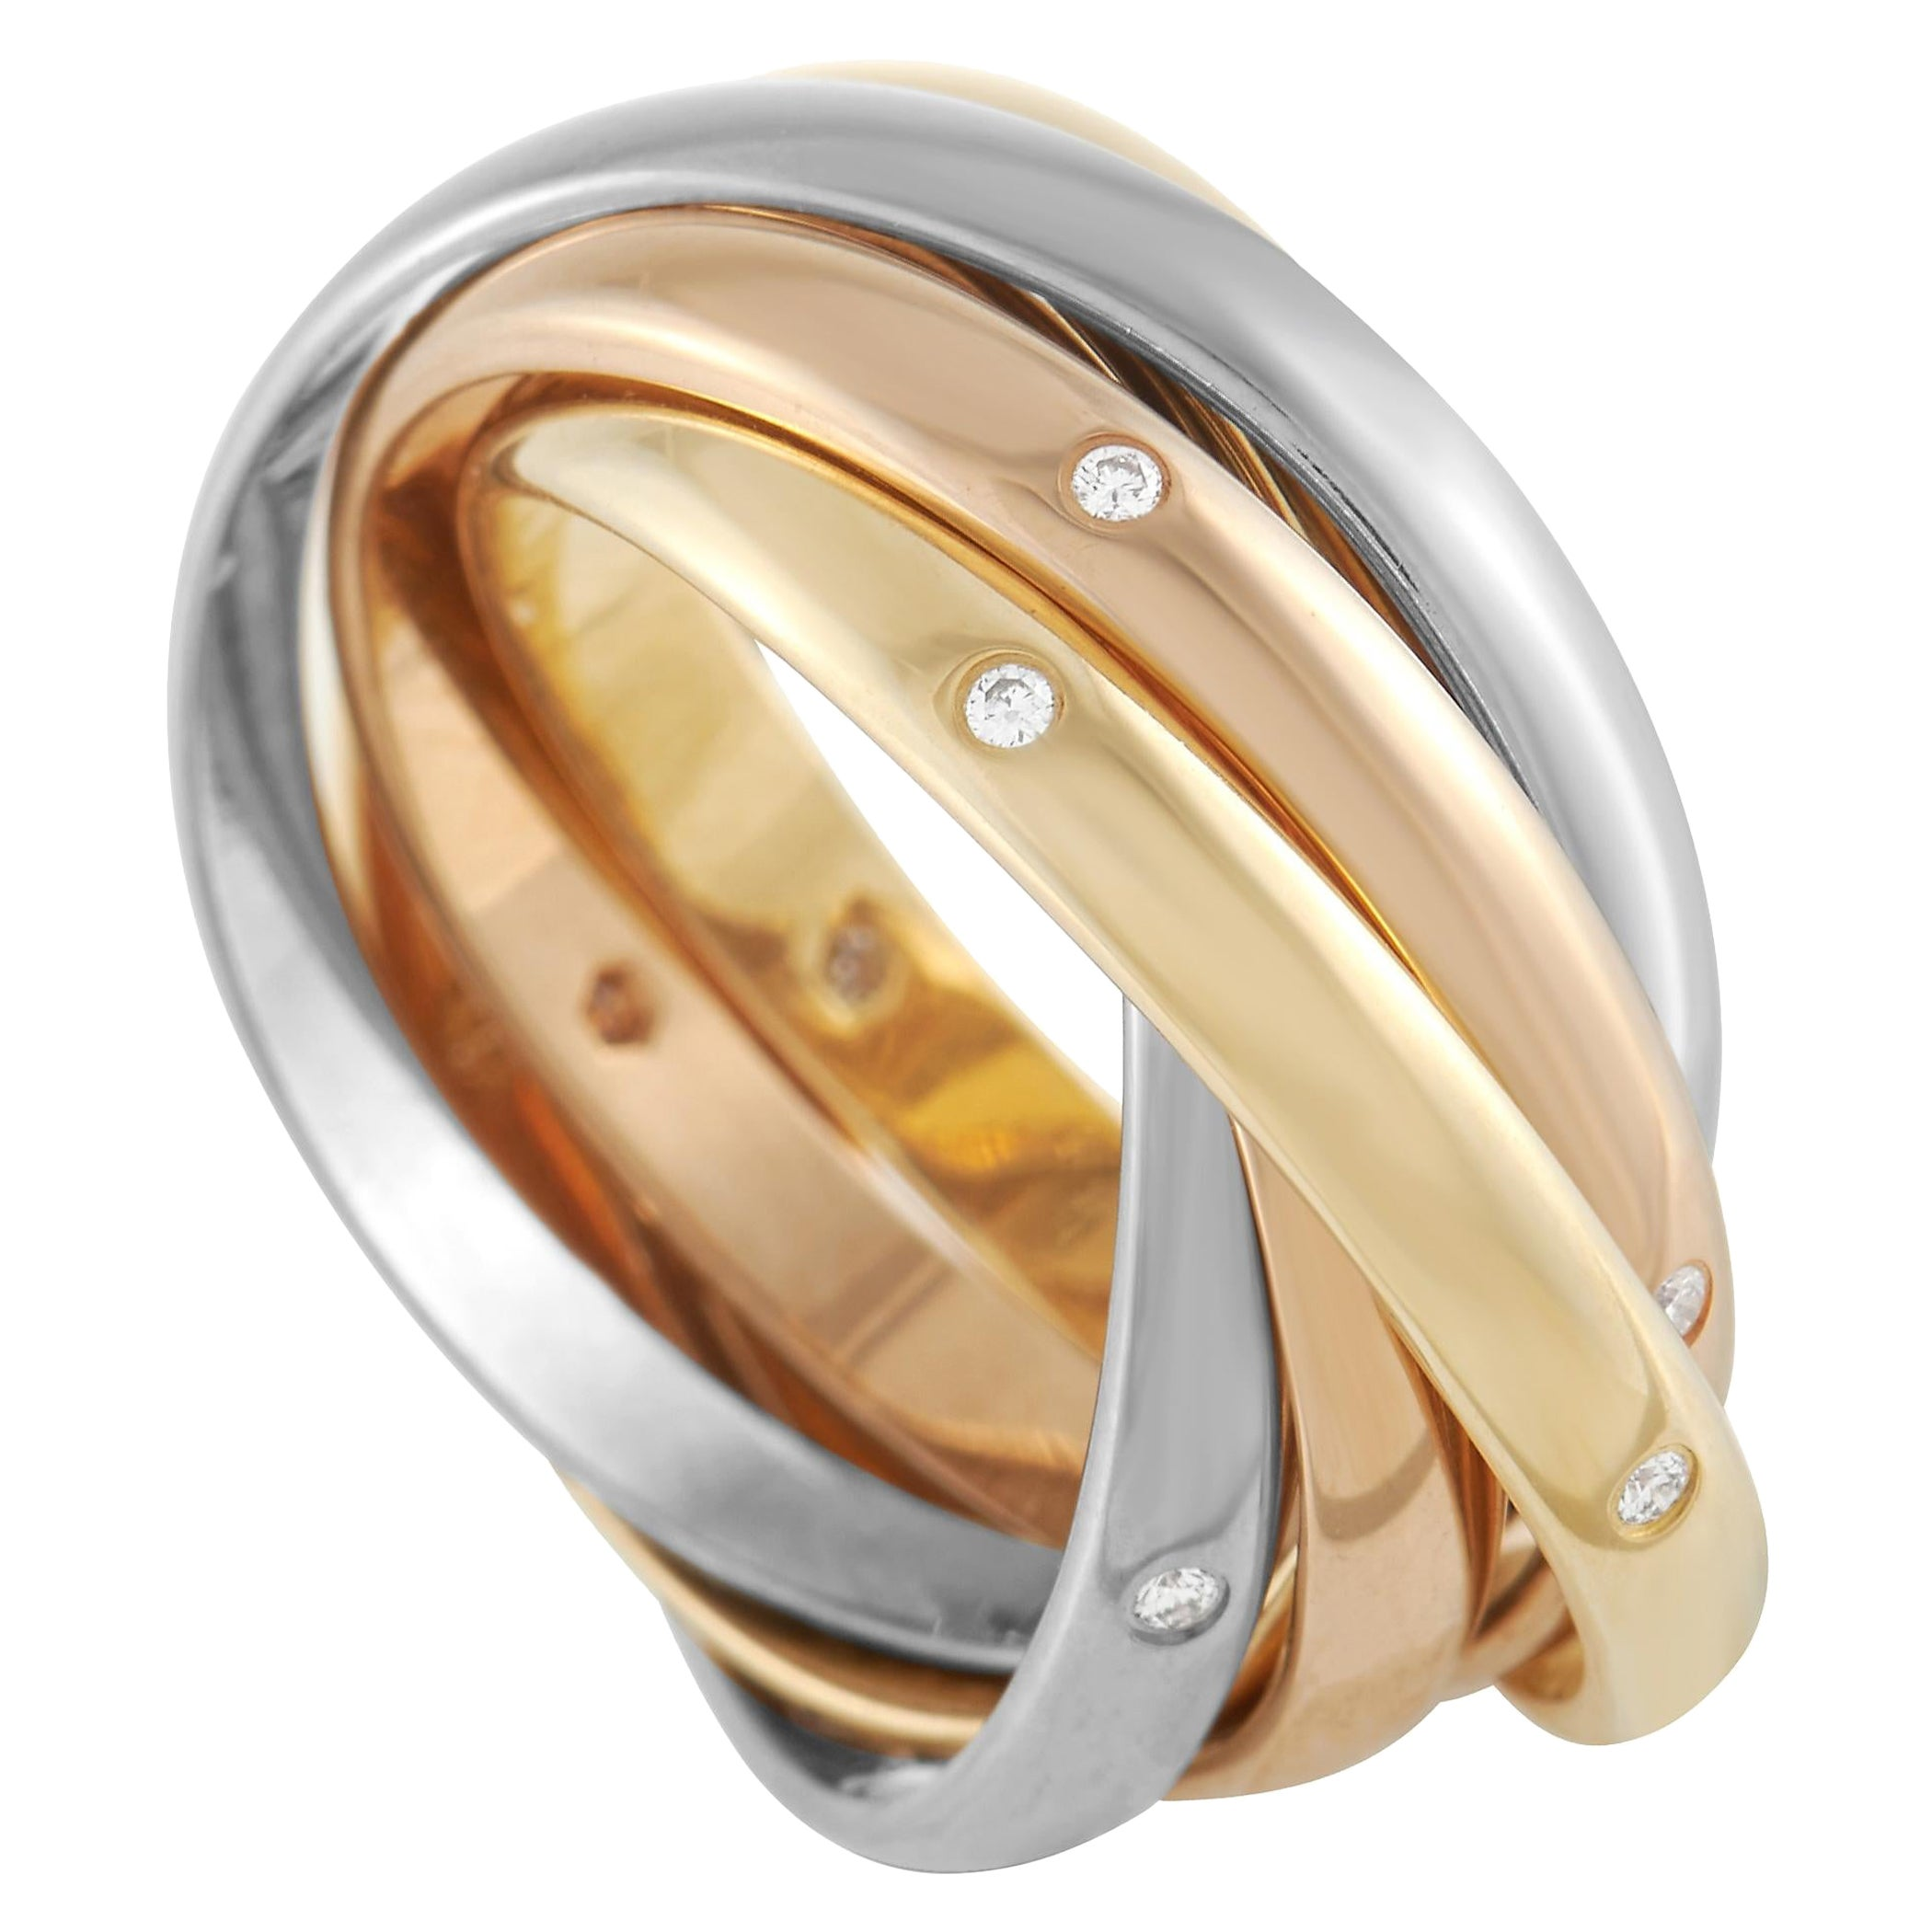 Cartier Trinity 18K Yellow, White and Rose Gold Diamond Ring